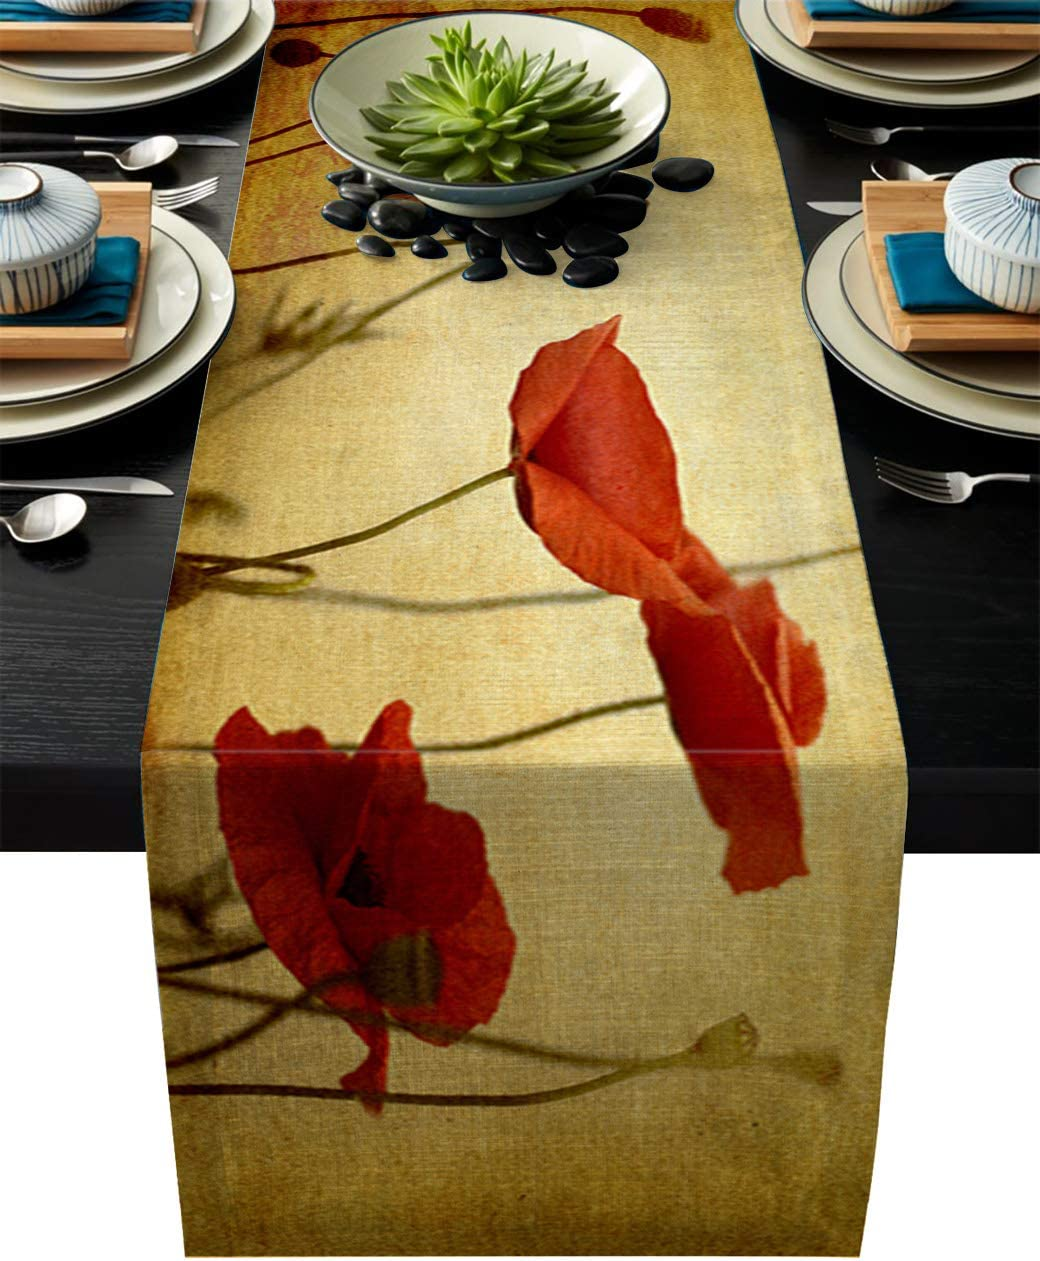 IDOWMAT Linen Burlap Table Runner Dresser Scarves 13 x 90 Inch, Vintage Red Poppy Flower Kitchen Table Runners for Farmhouse Dinner, Holiday Parties, Wedding, Events, Decor